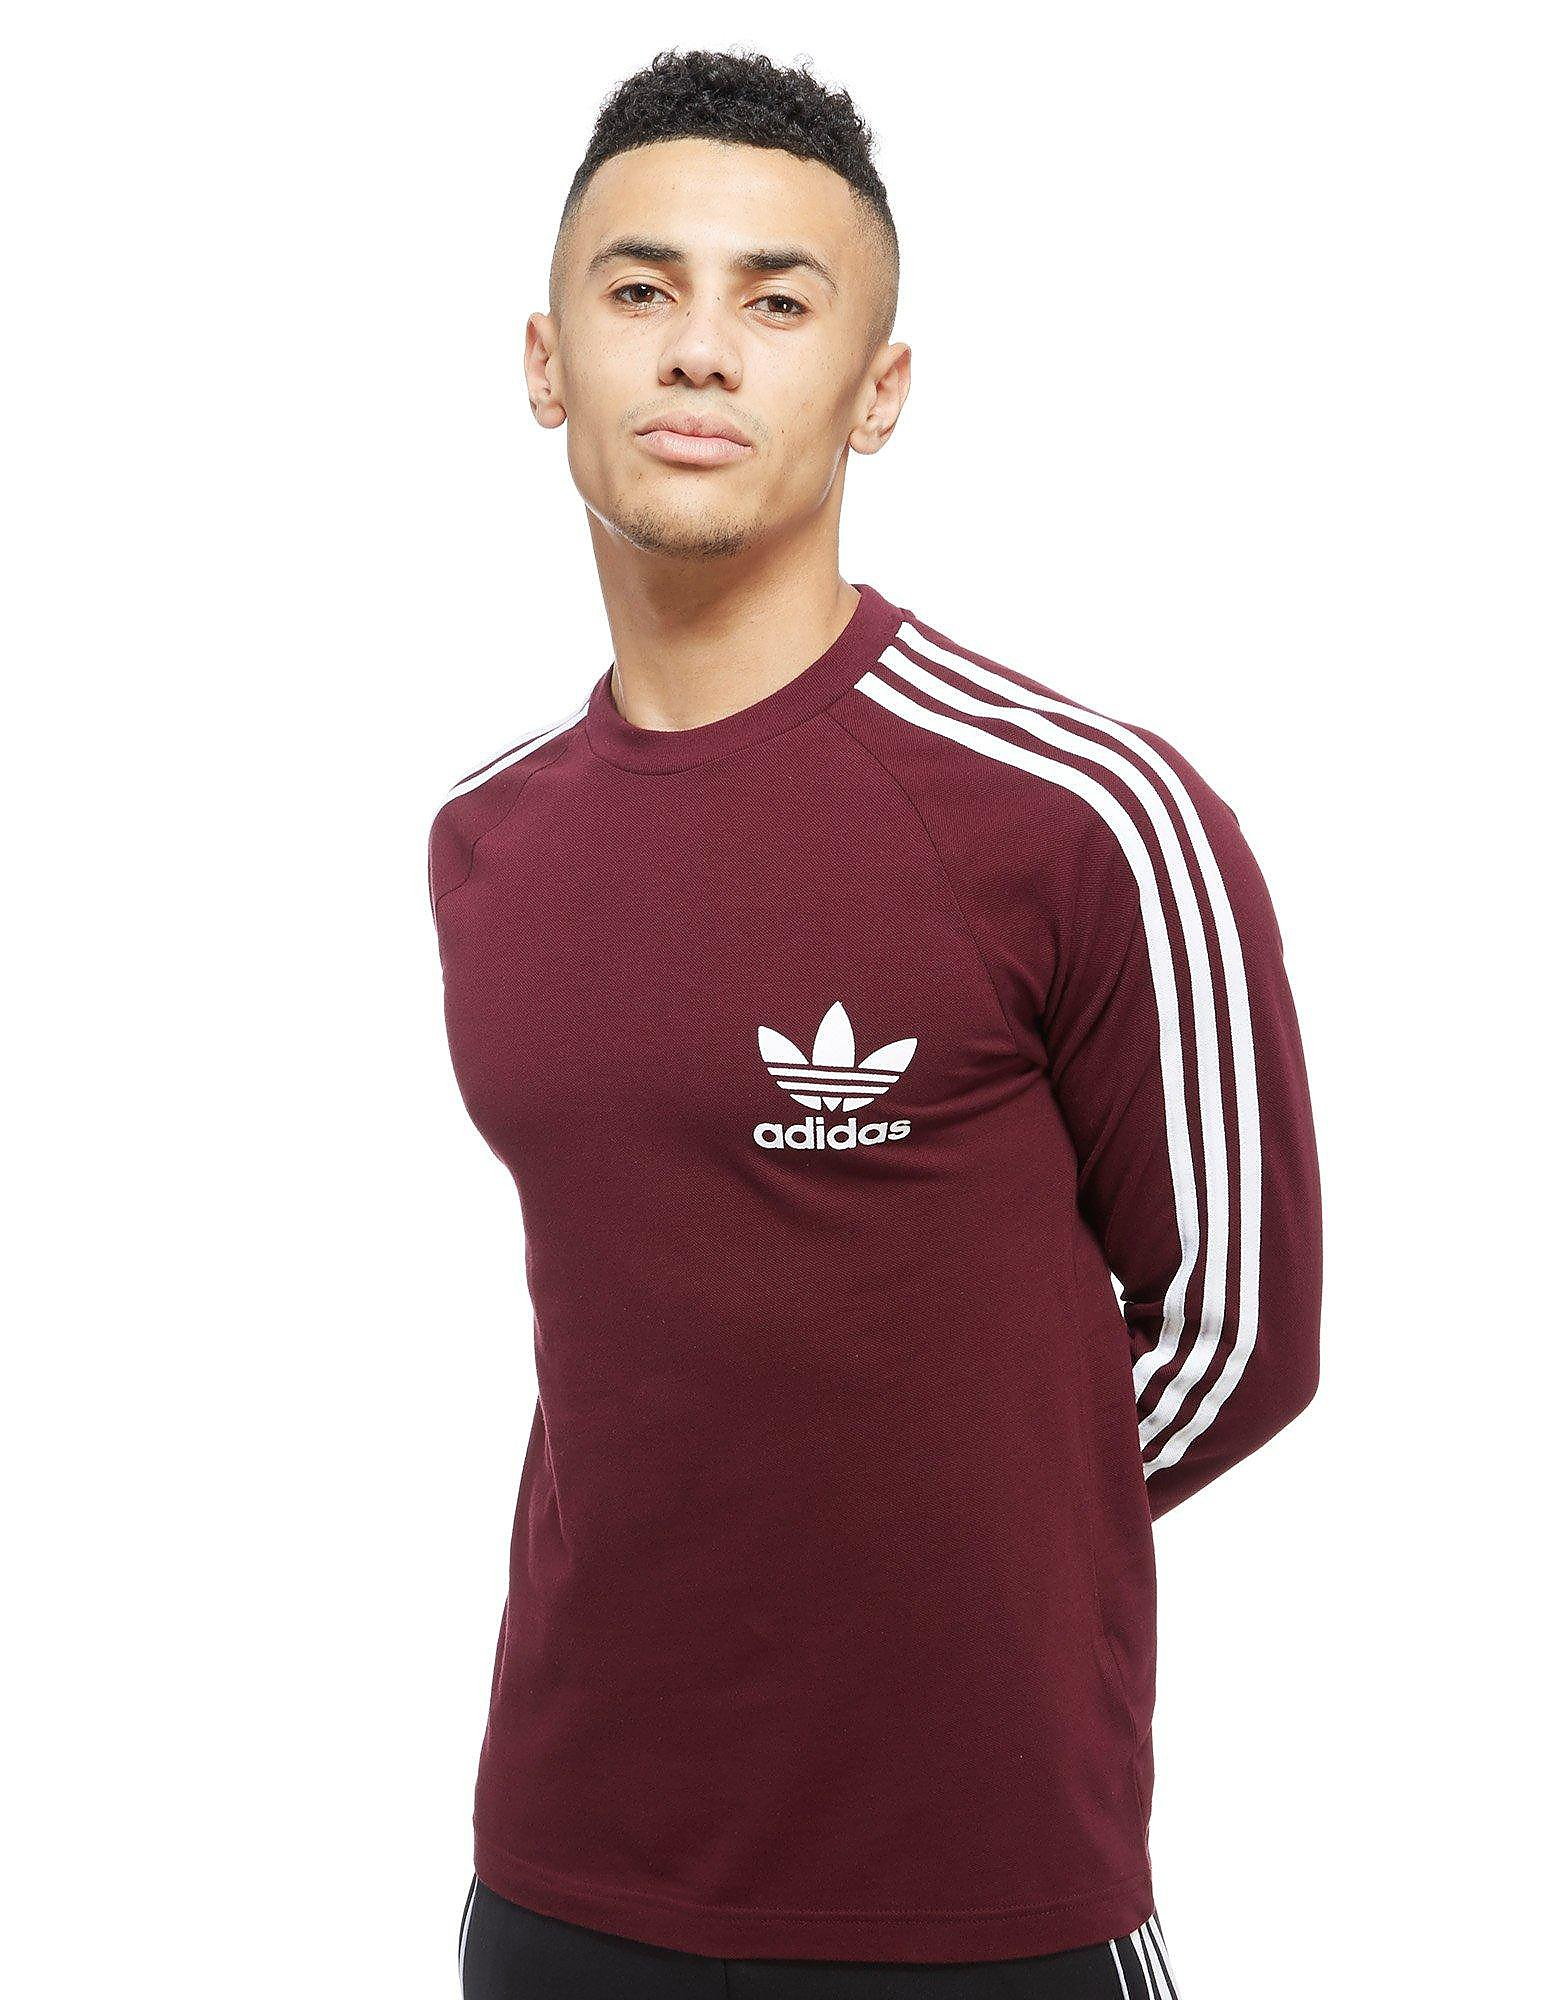 adidas Originals California Pique T-Shirt